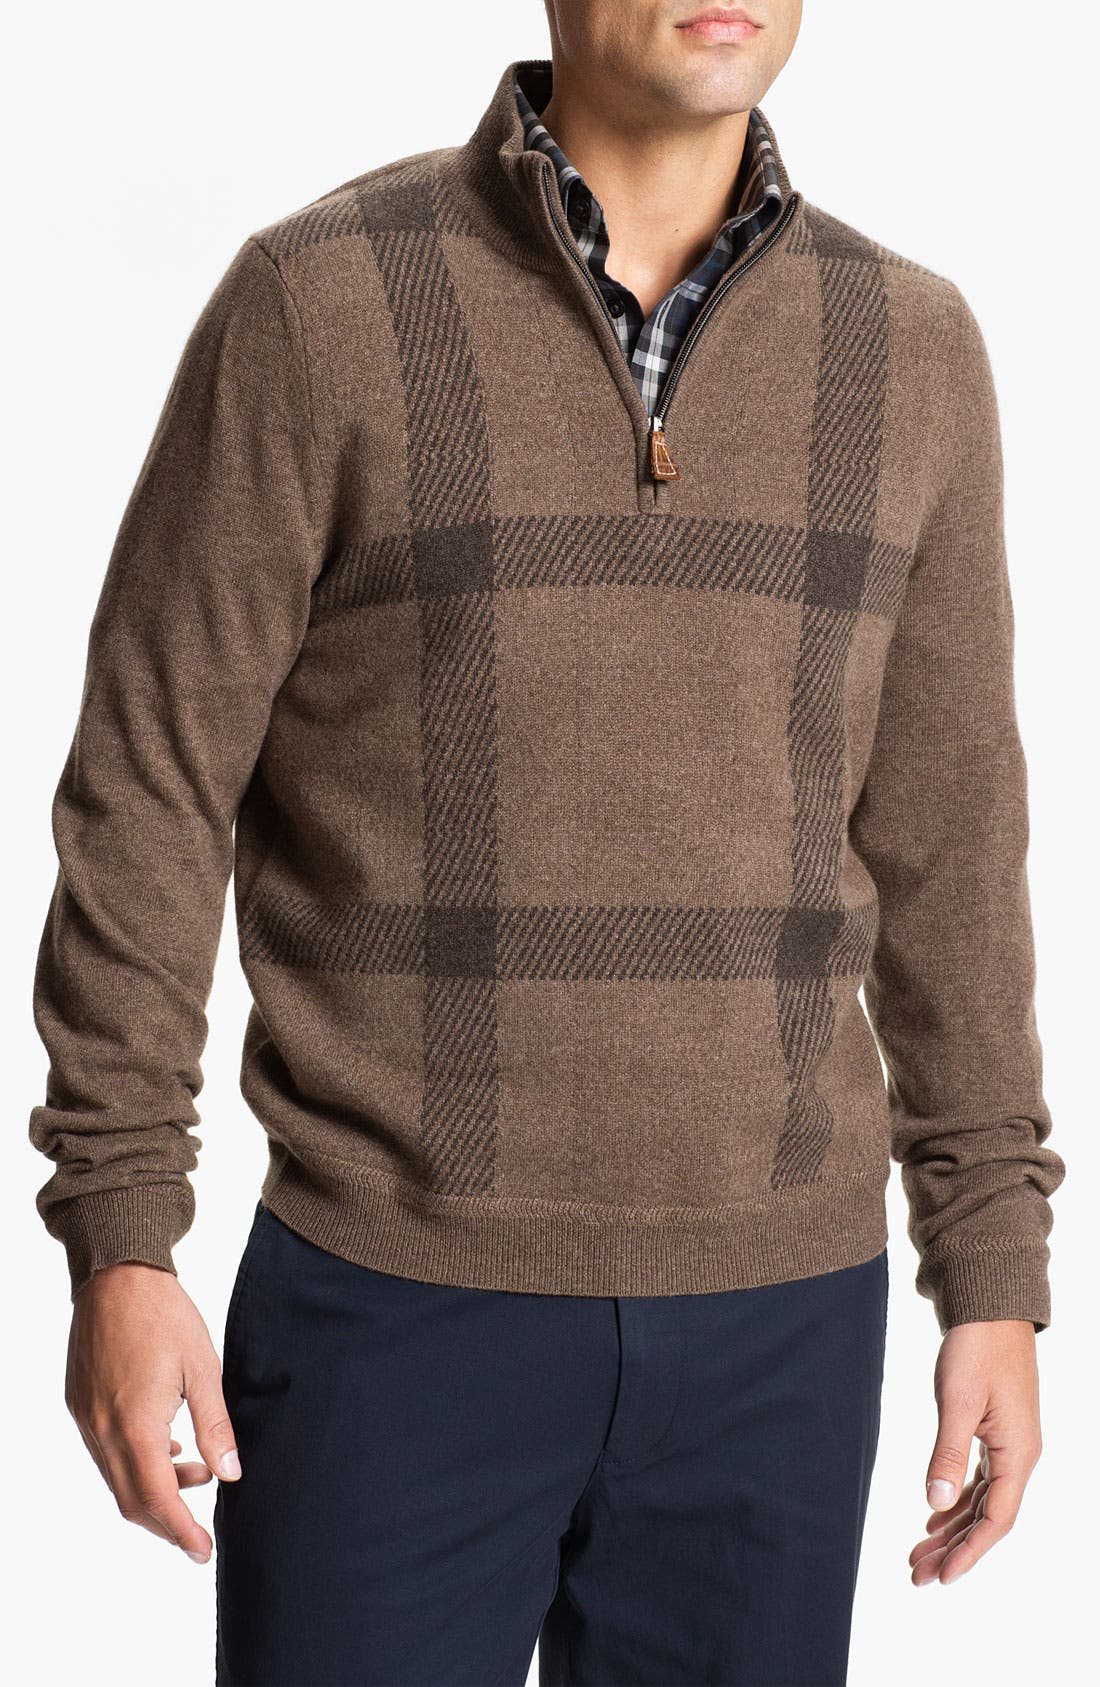 Alternate Image 1 Selected - John W. Nordstrom® Quarter Zip Cashmere Sweater